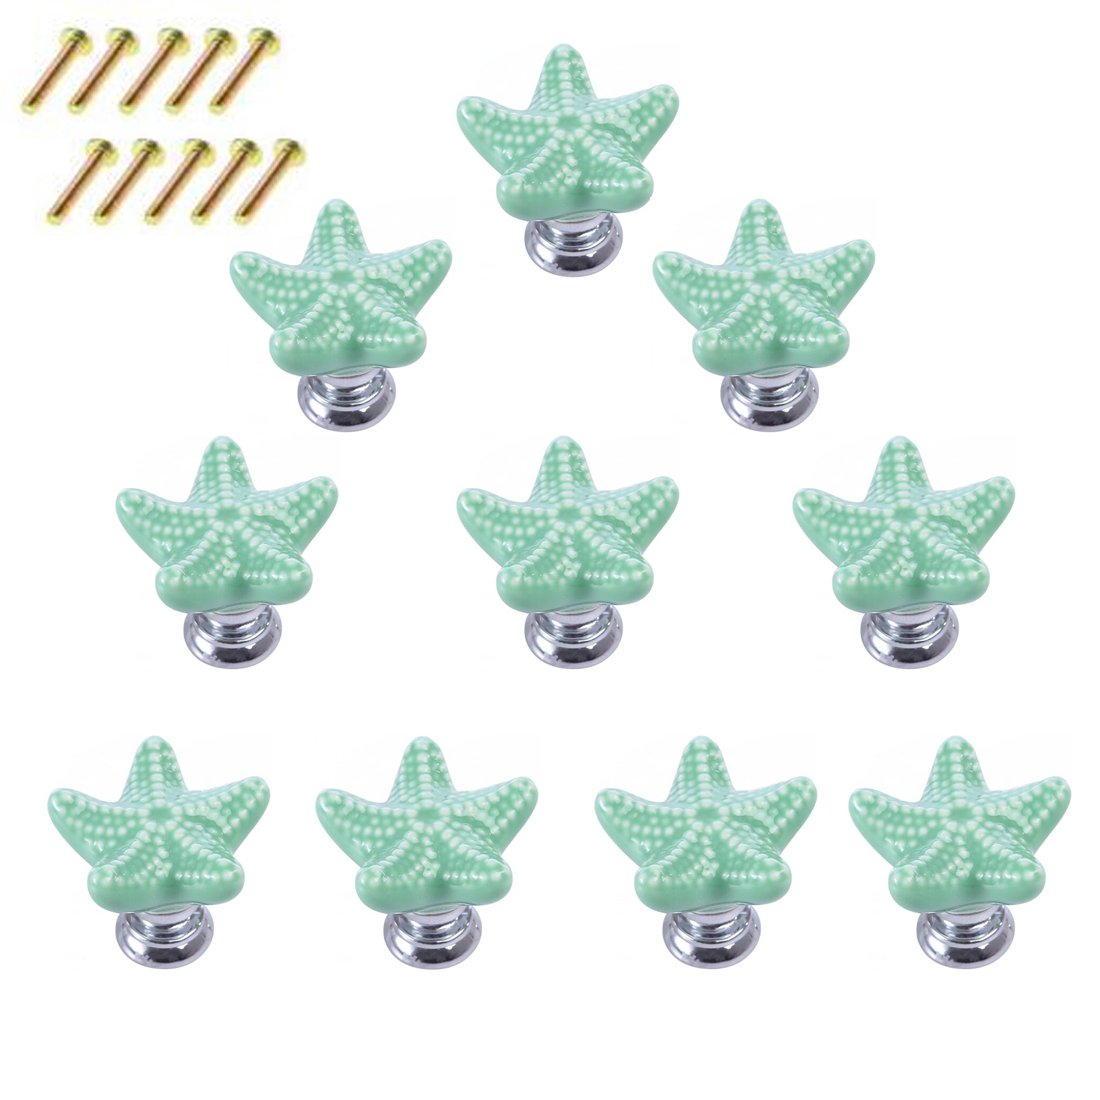 10 Pack Starfish Dresser Knobs,Haoun Starfish Ceramic Knobs Handles Pulls for Drawer Cabinet Dresser,with Screws - Green